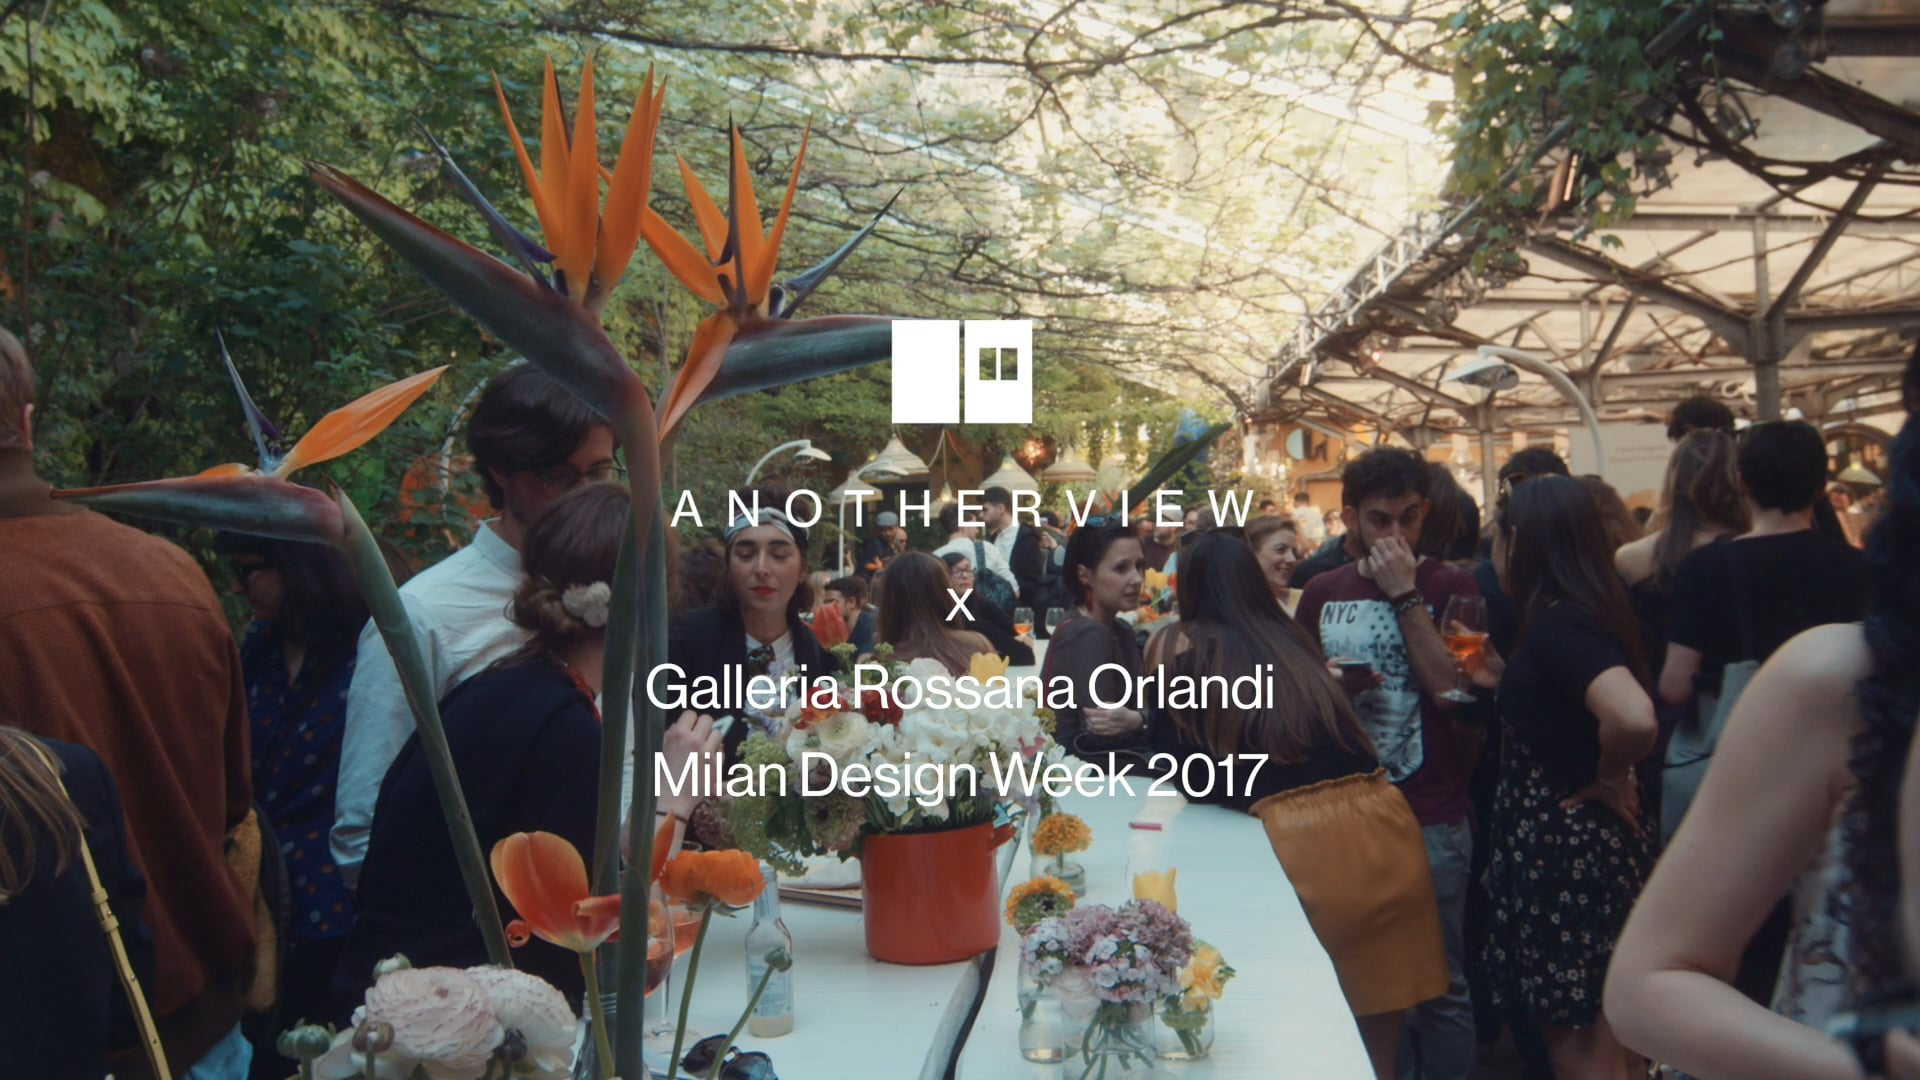 Anotherview exhibitions